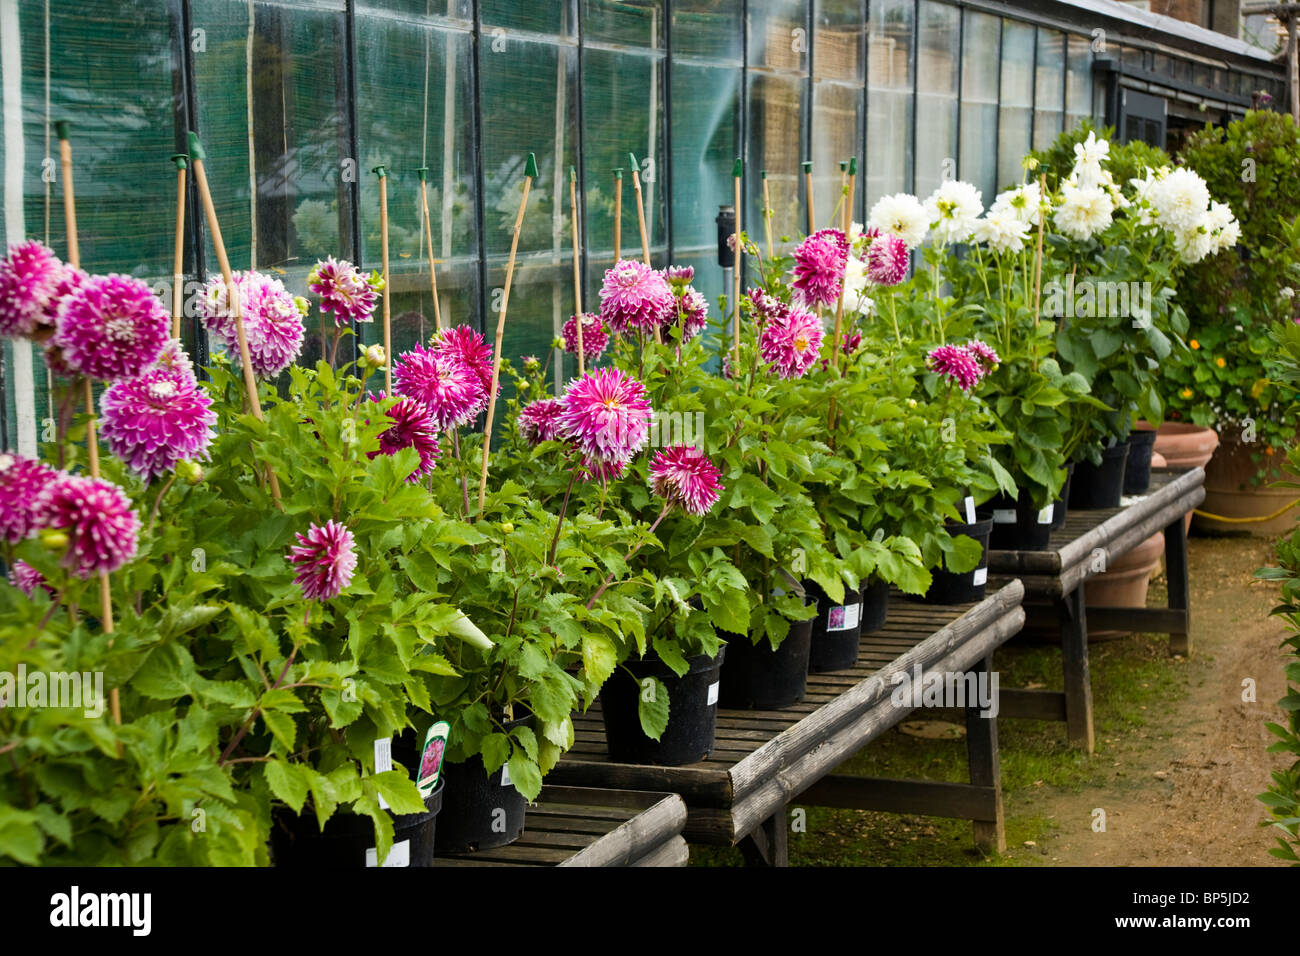 Pink And White Dahlia Flower Flowers Plant Plants For Sale At Stock Photo Alamy